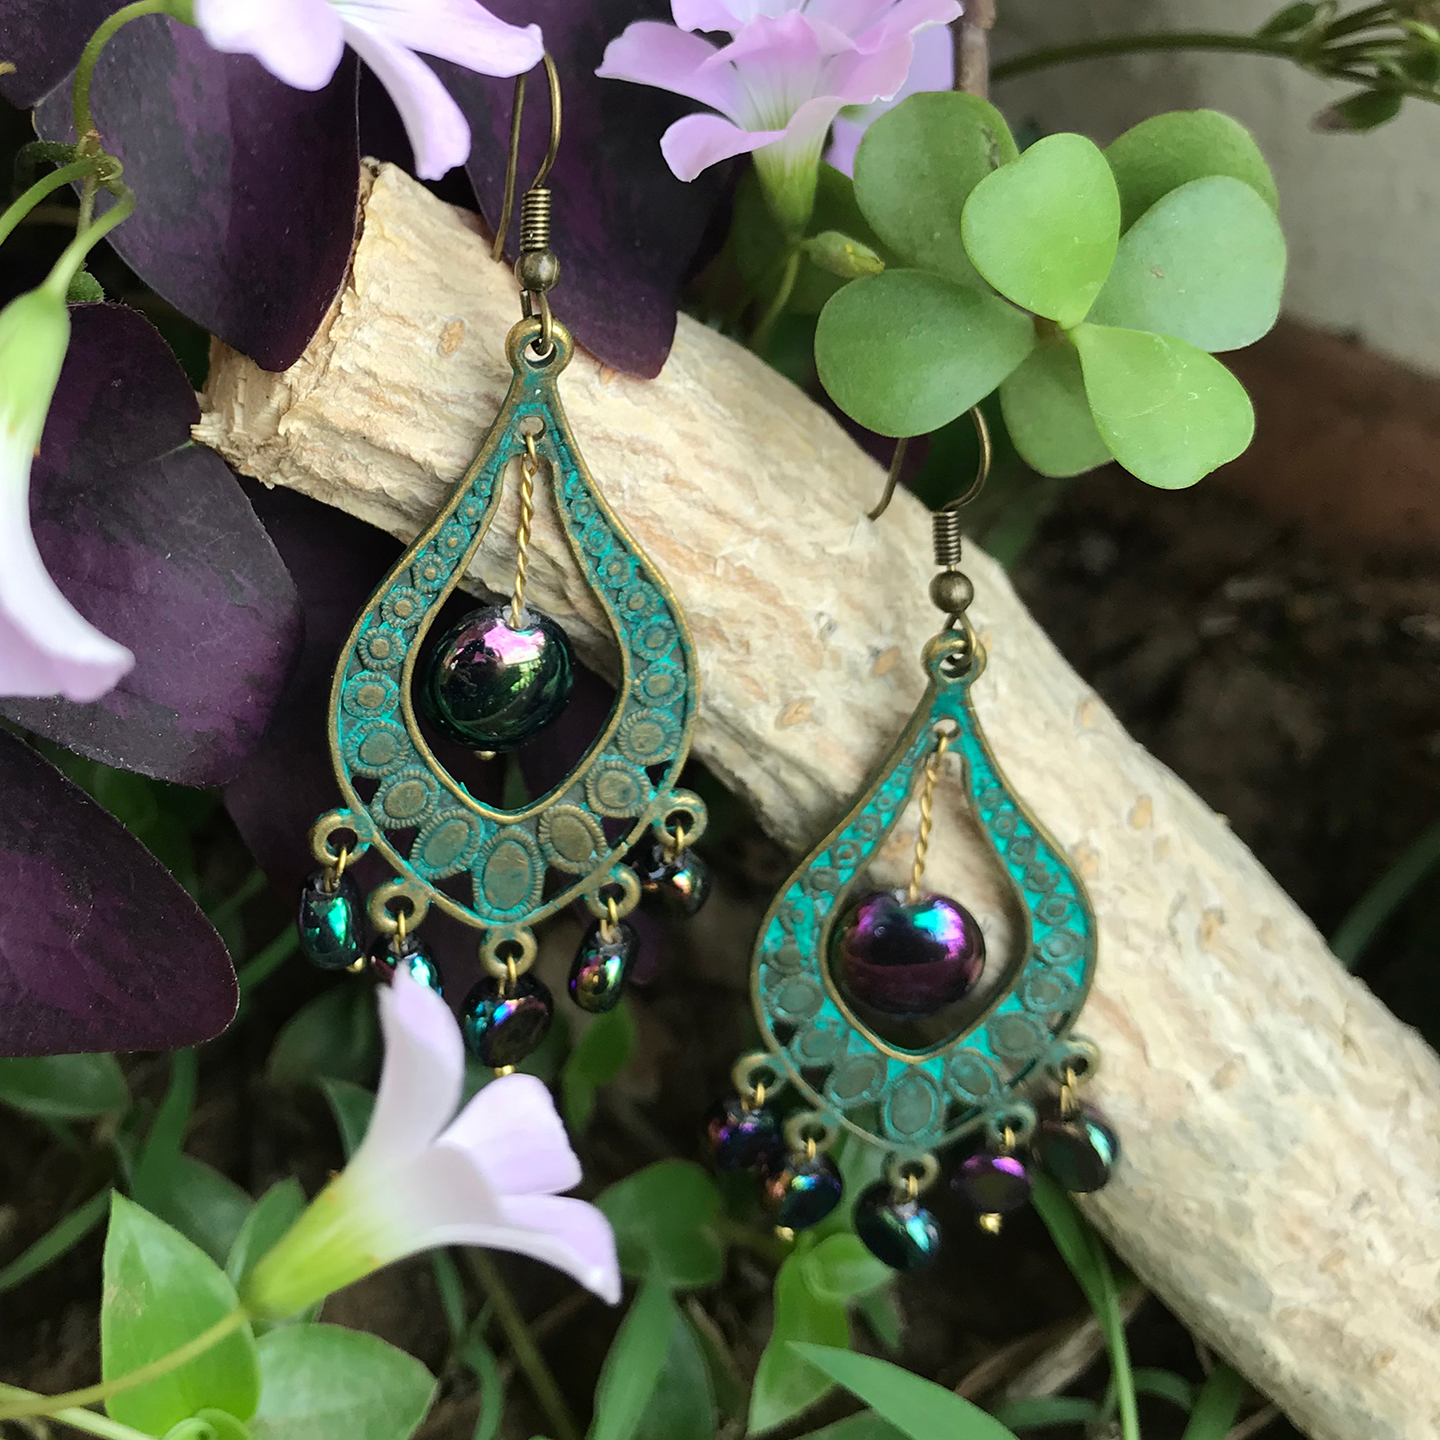 Earrings - Peacock with glass beads